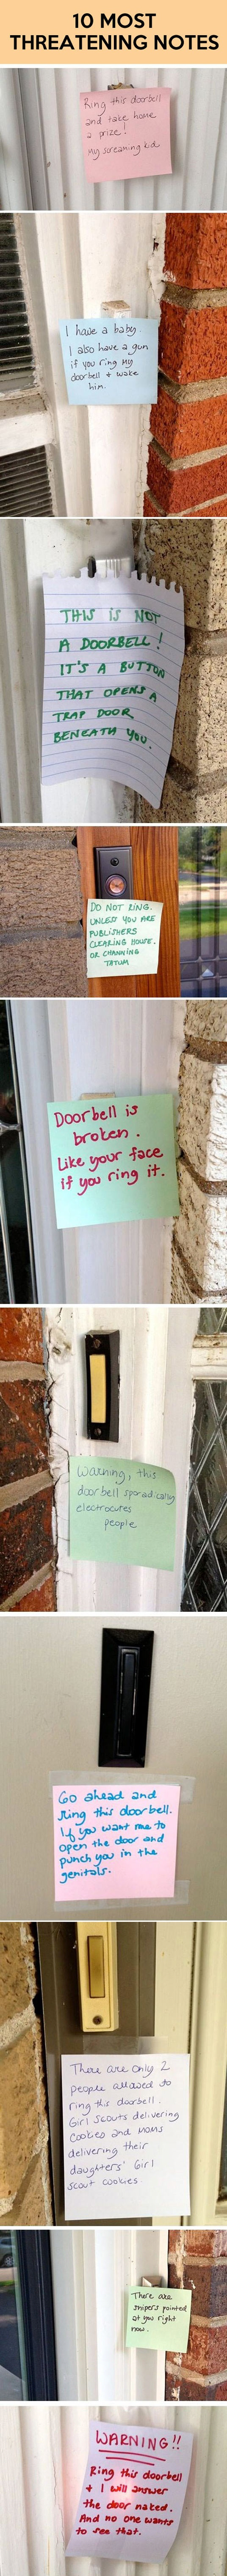 cool-notes-doorbell-ring